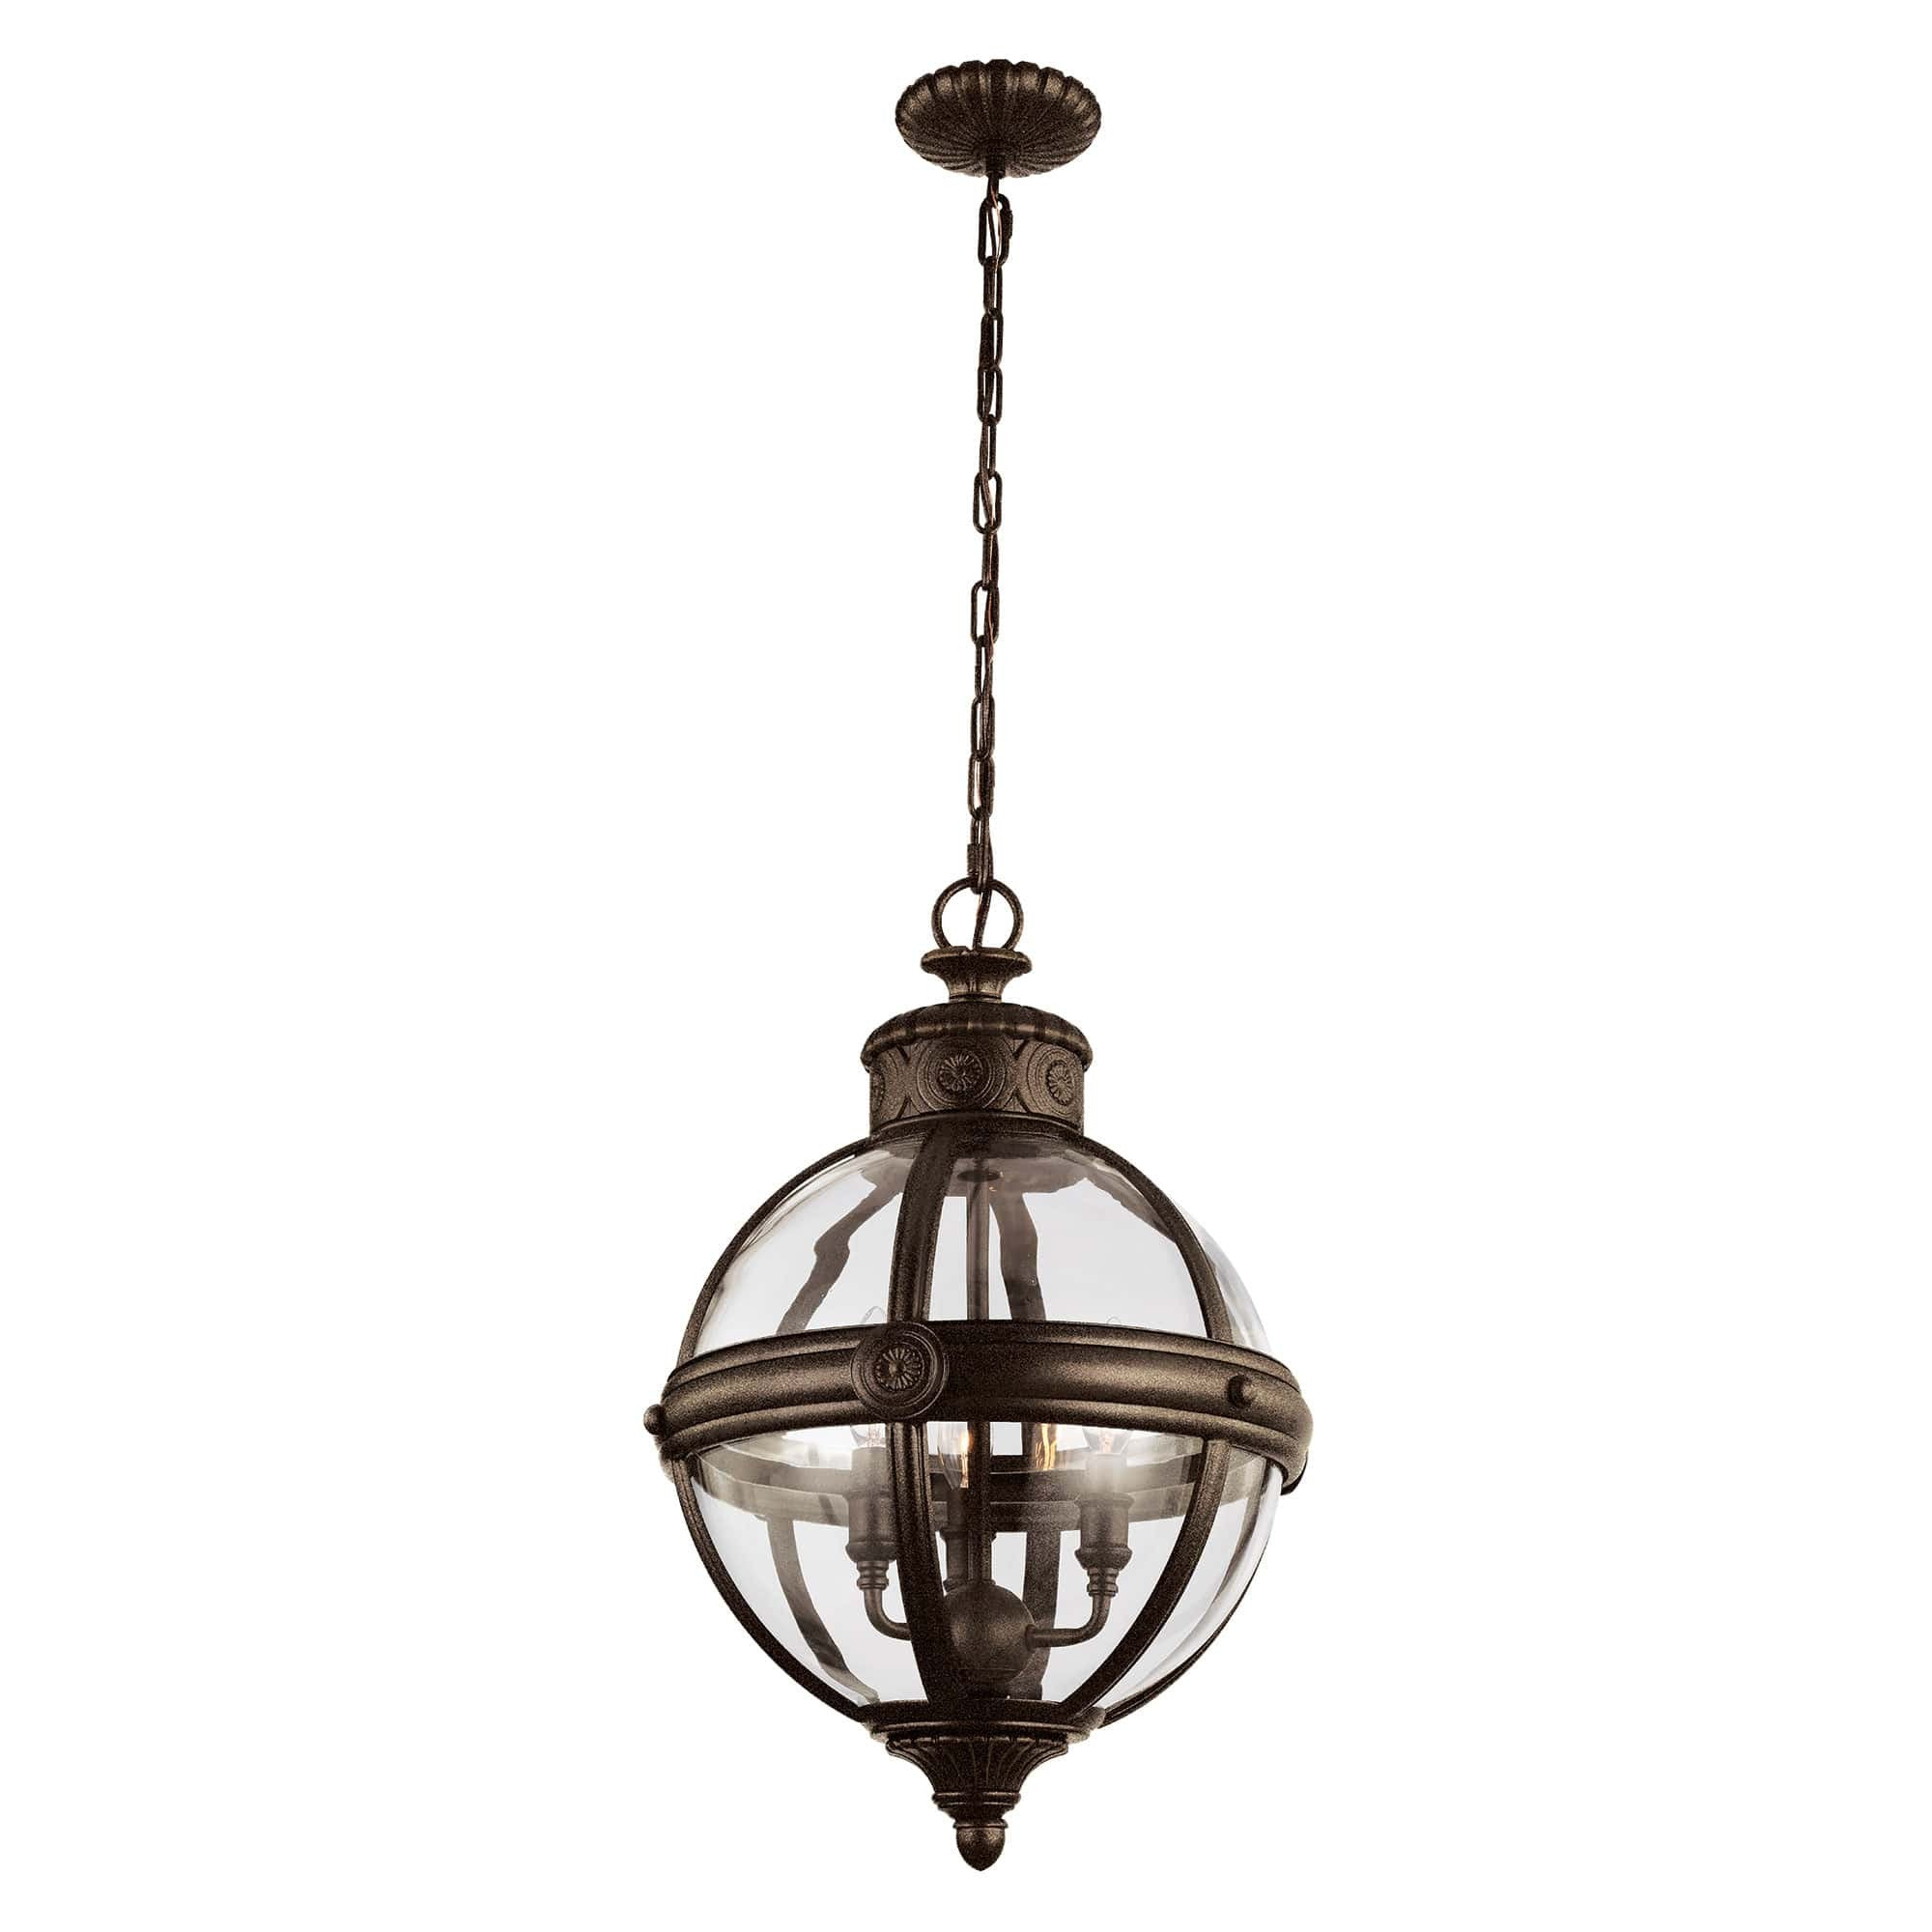 Feiss Adams 3 Light Bronze Glass Orb Candle Pendant